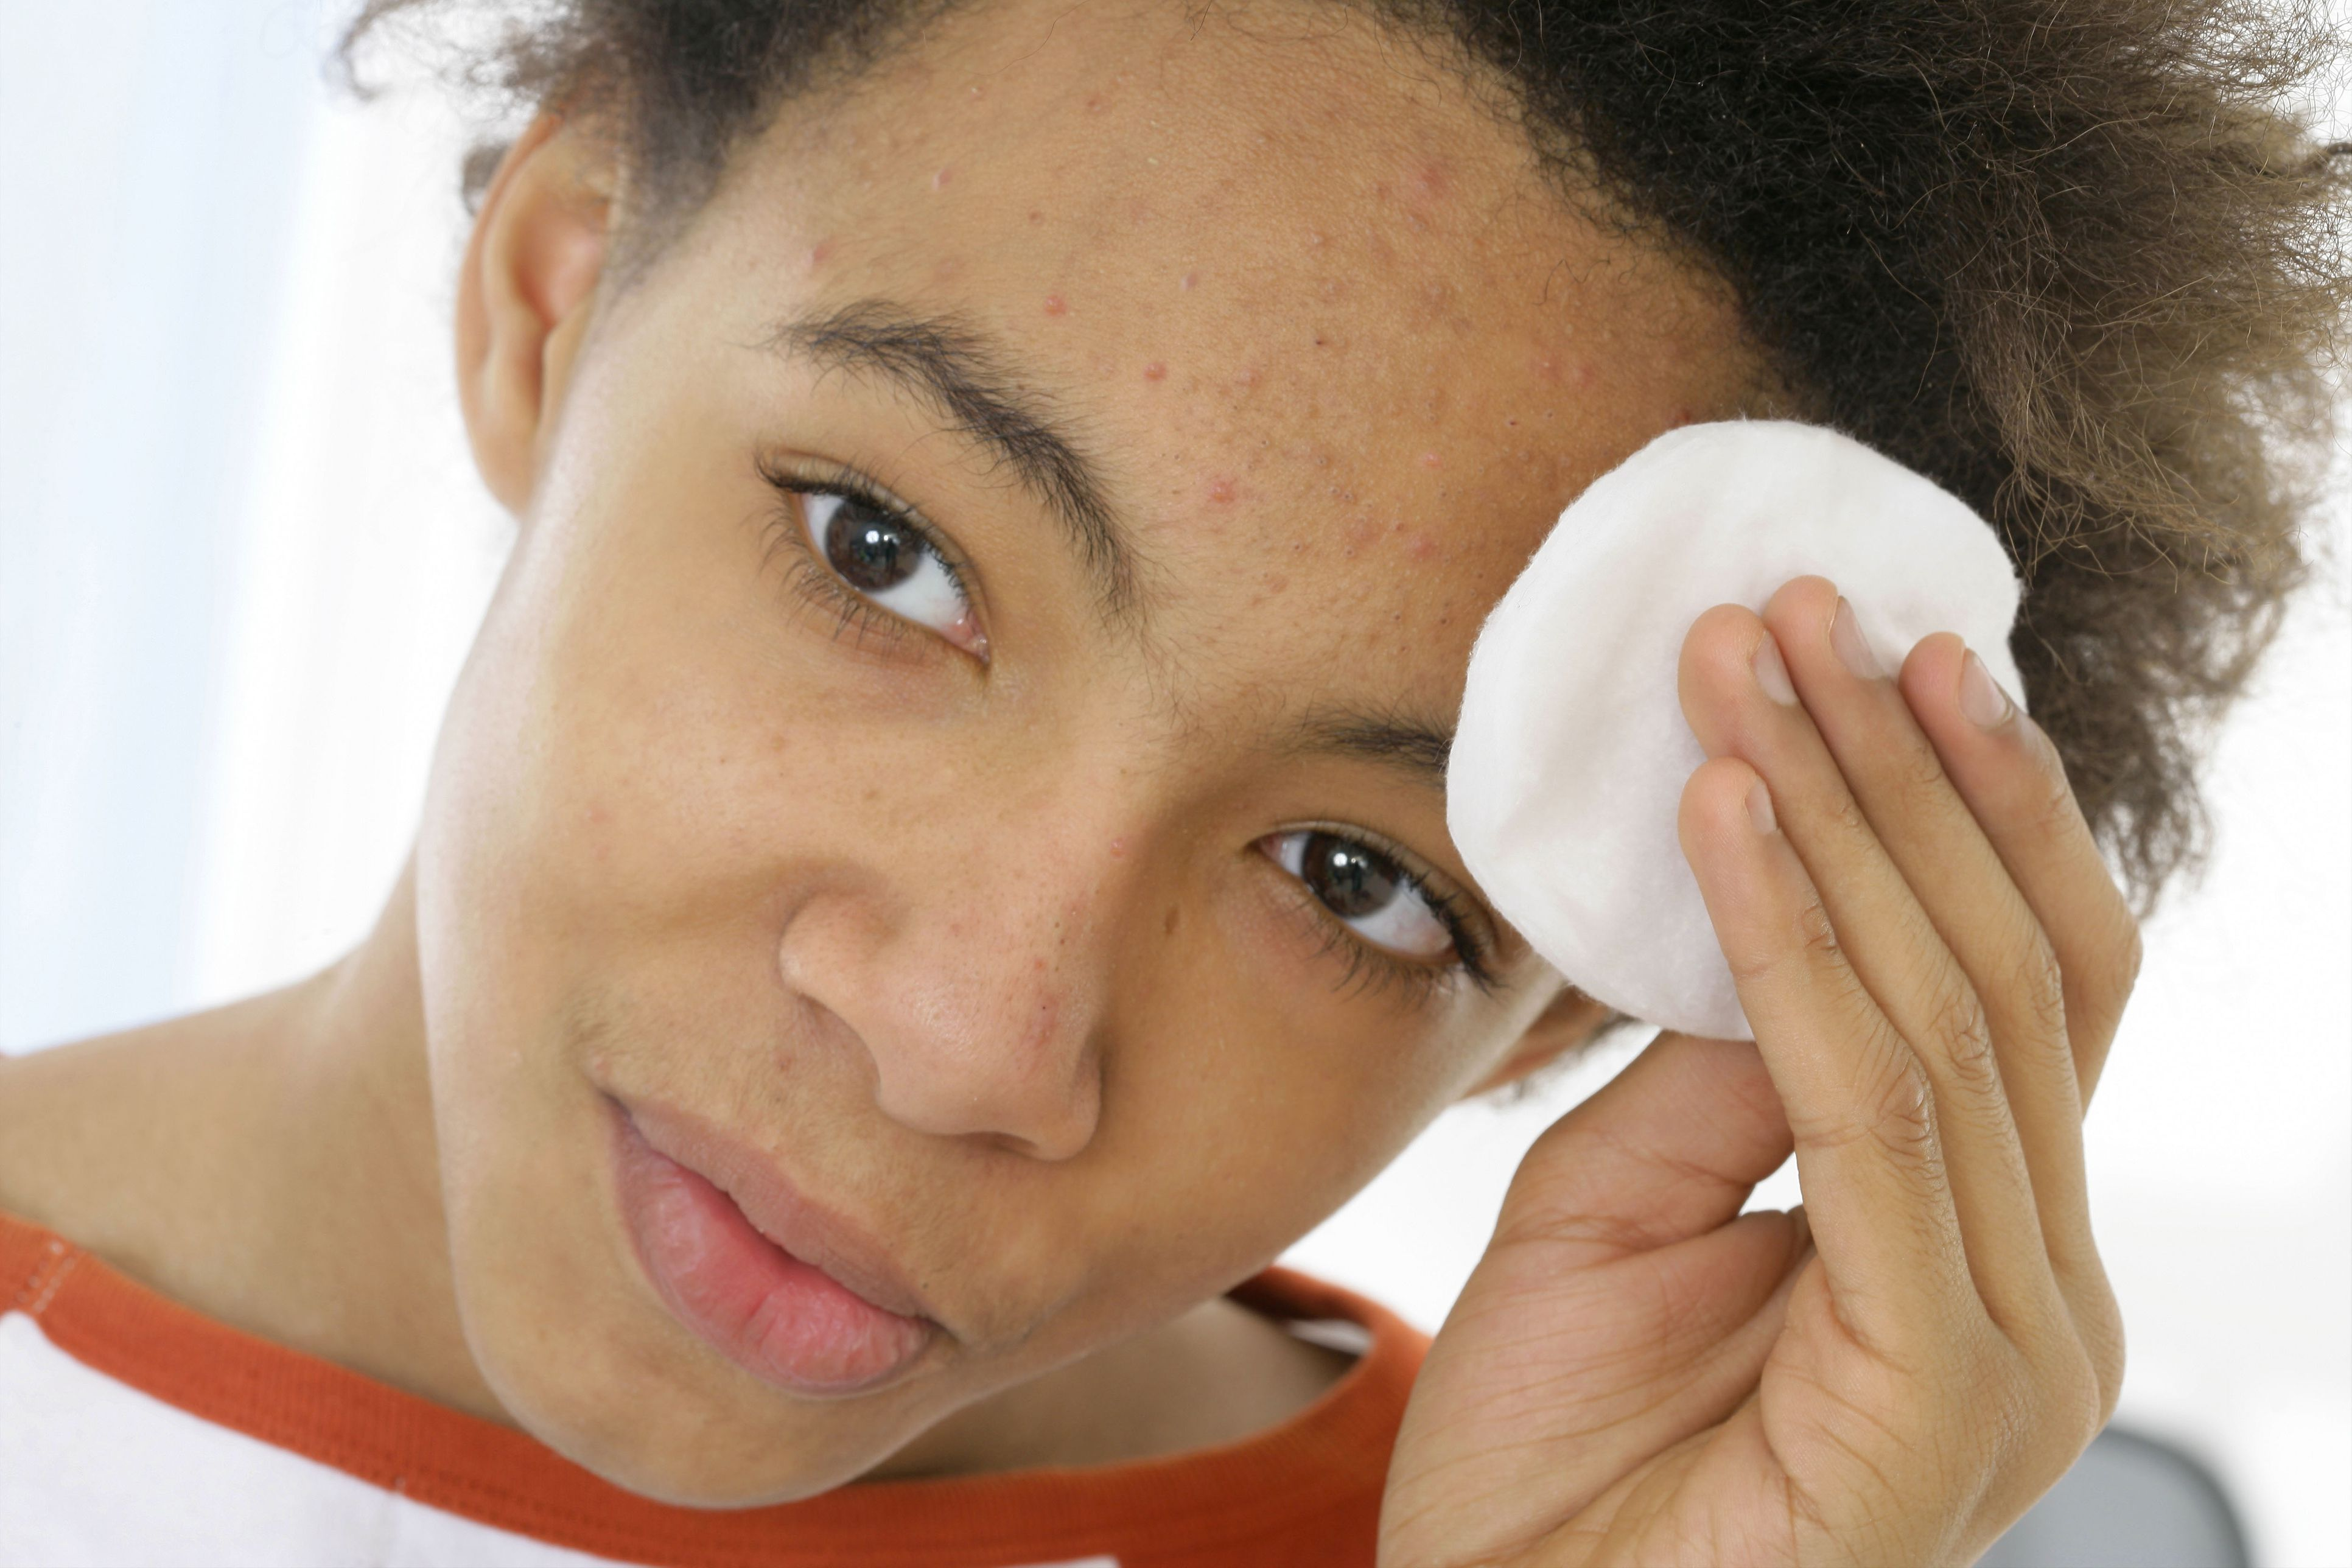 Is Rubbing Alcohol Good for Treating Acne?